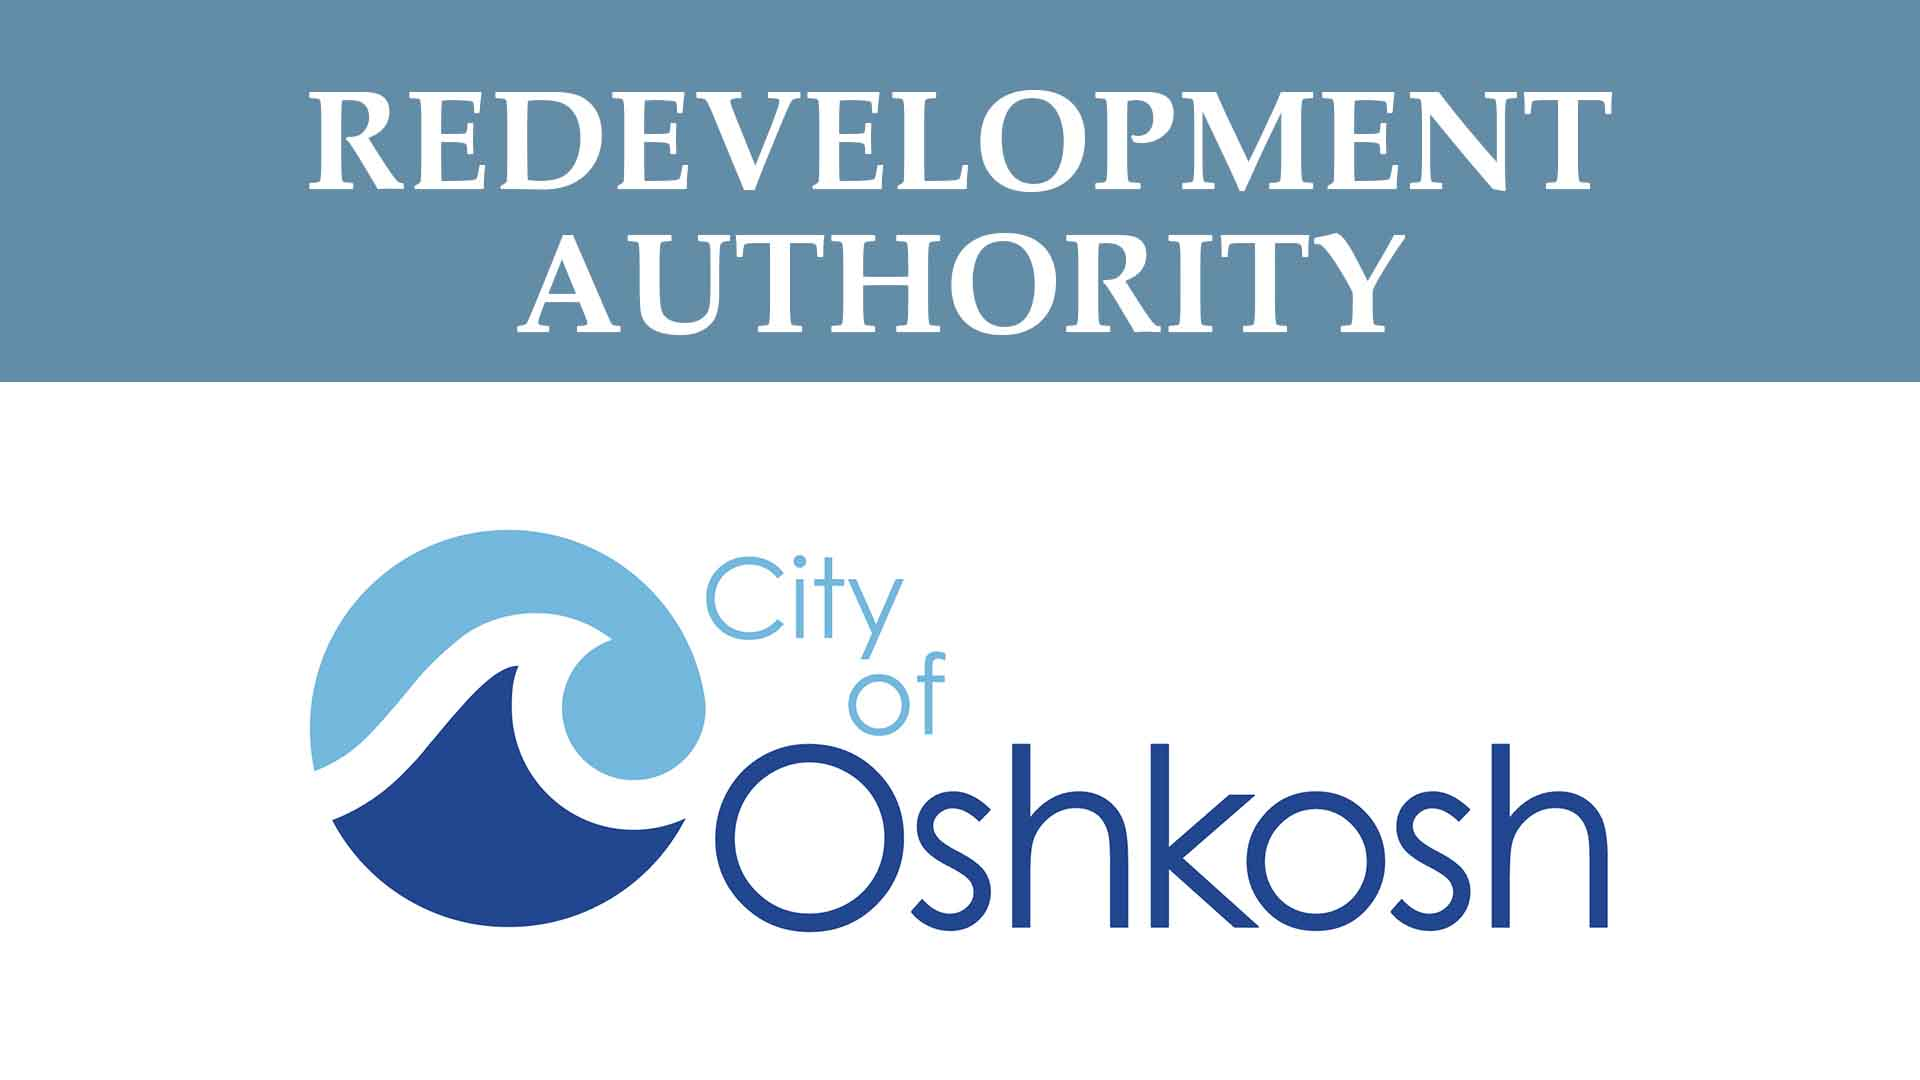 Redevelopment Authority